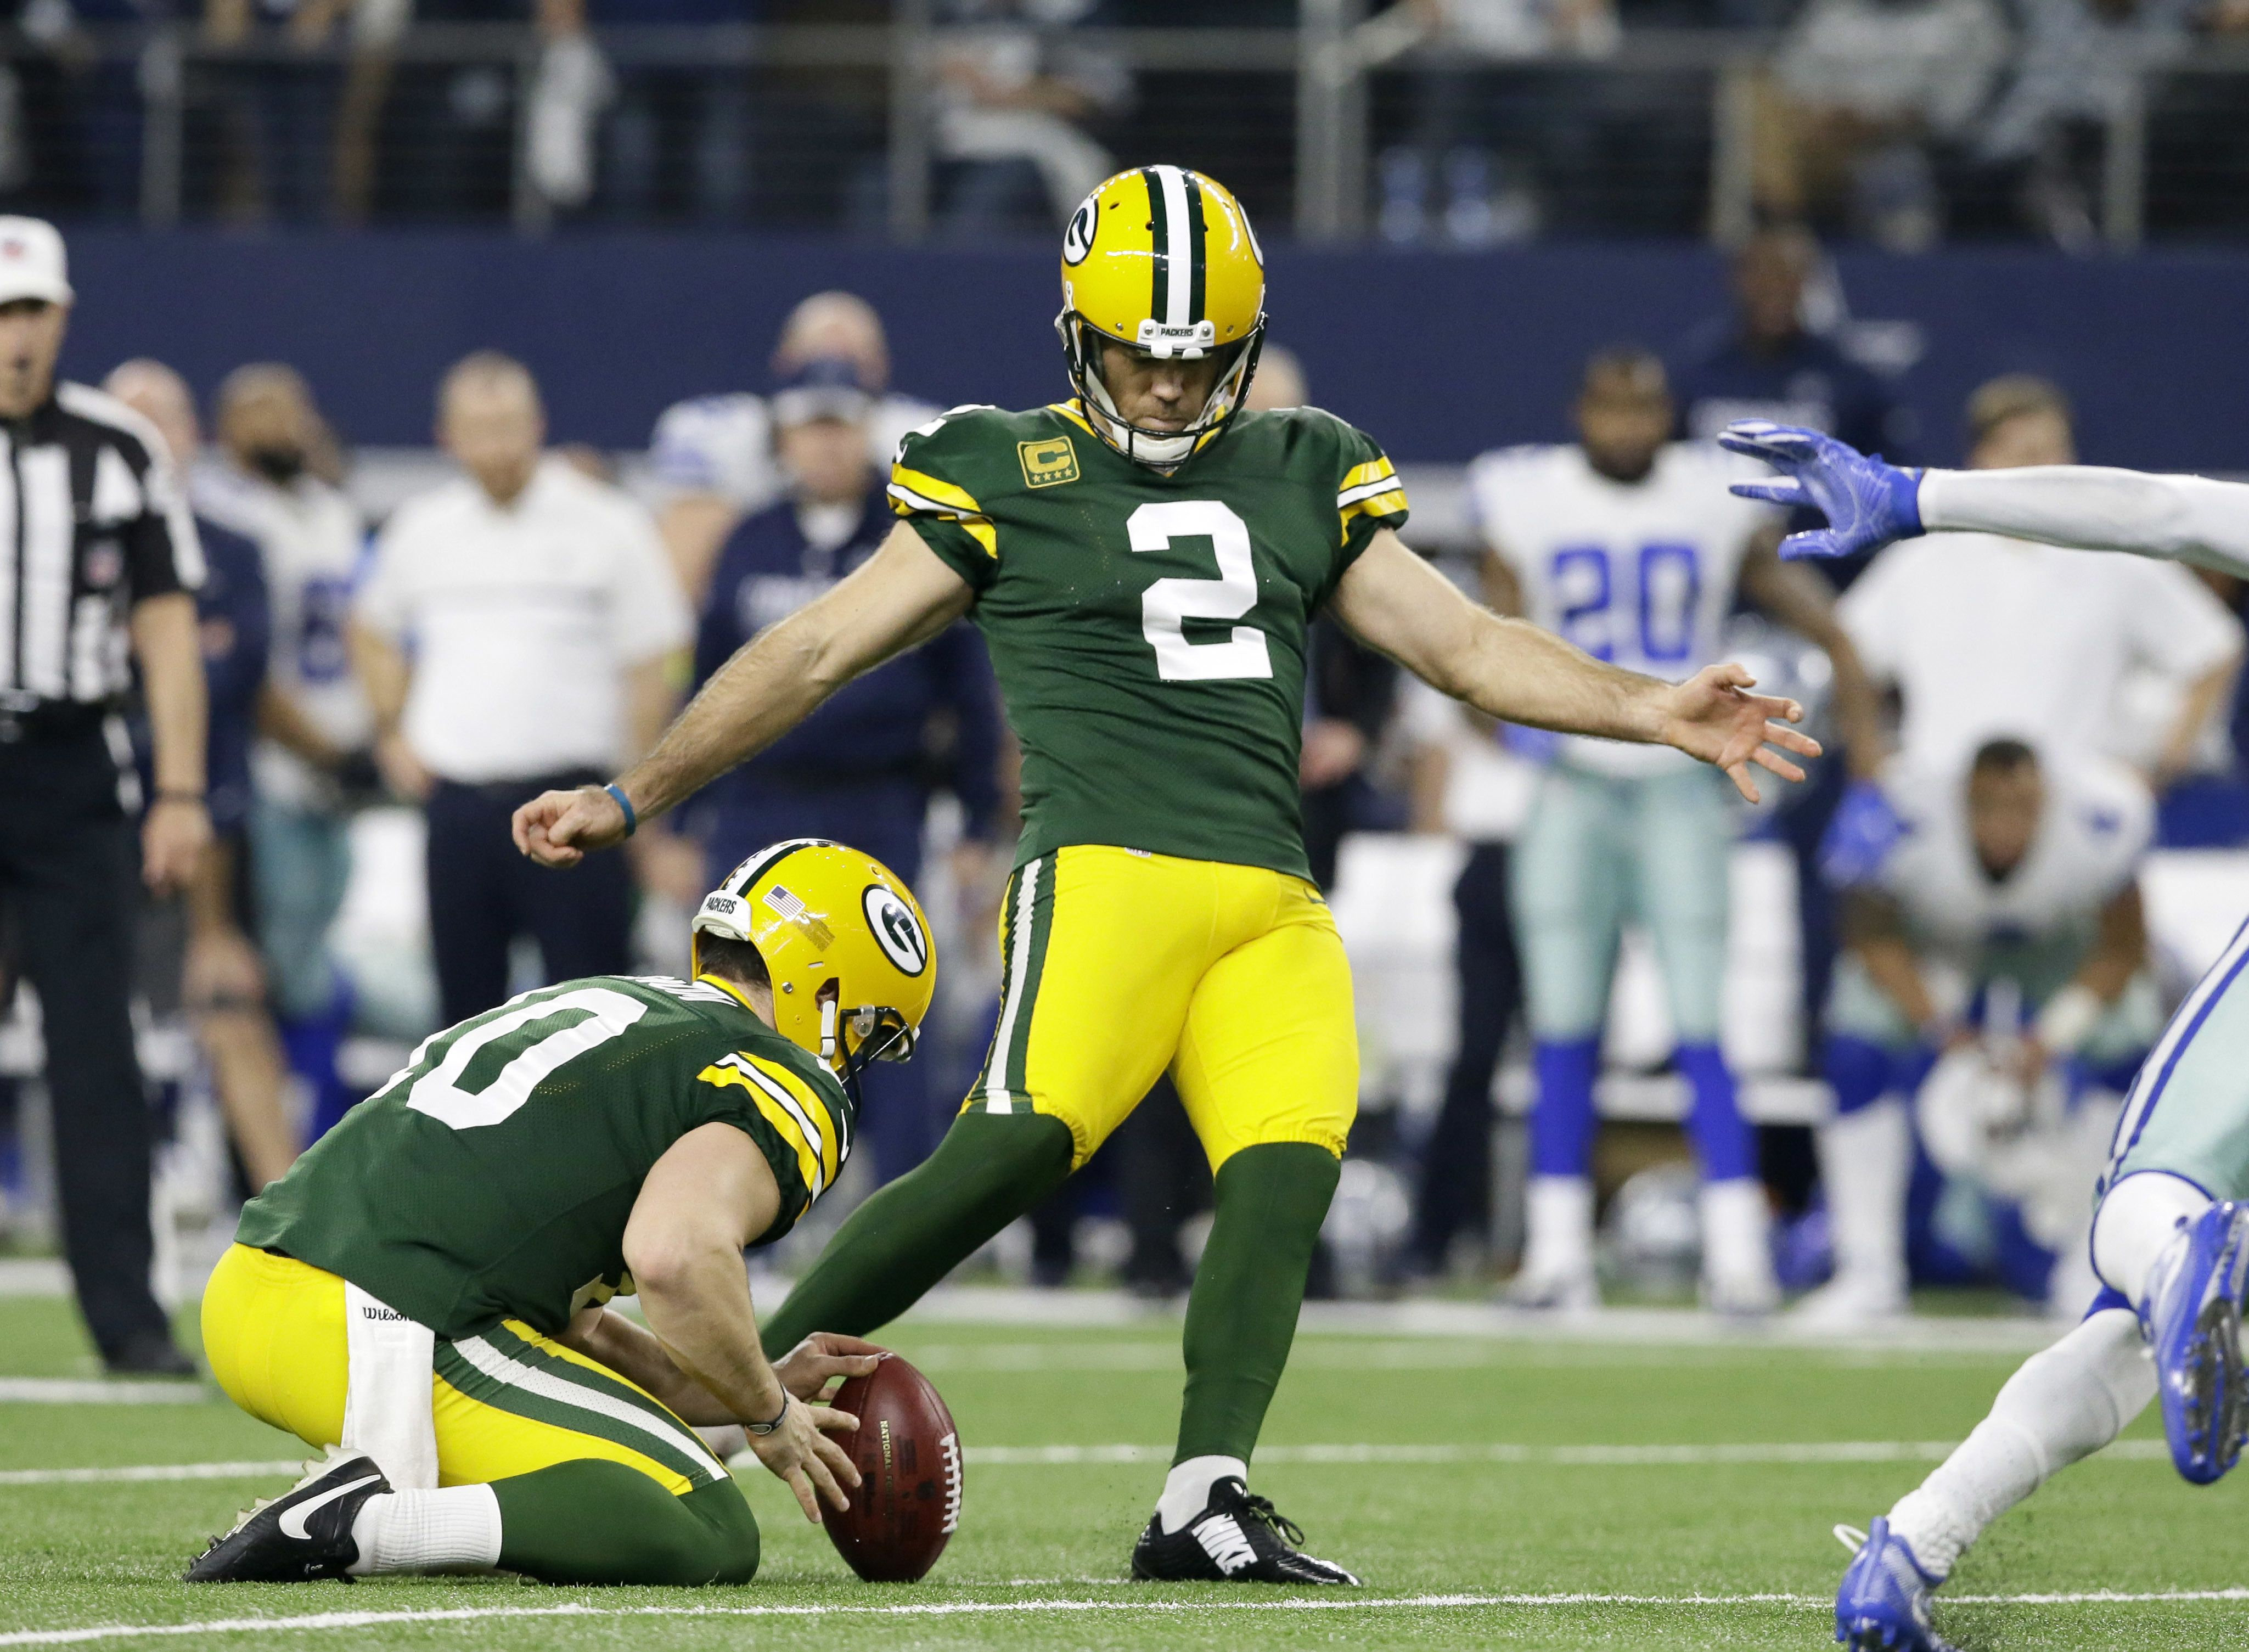 And He Just Gets Better After Kicking A 56 Yard Field Goal Green Bay Packers K Mason Crosby Followed Up By Putting A Packers Green Bay Packers Packers Games